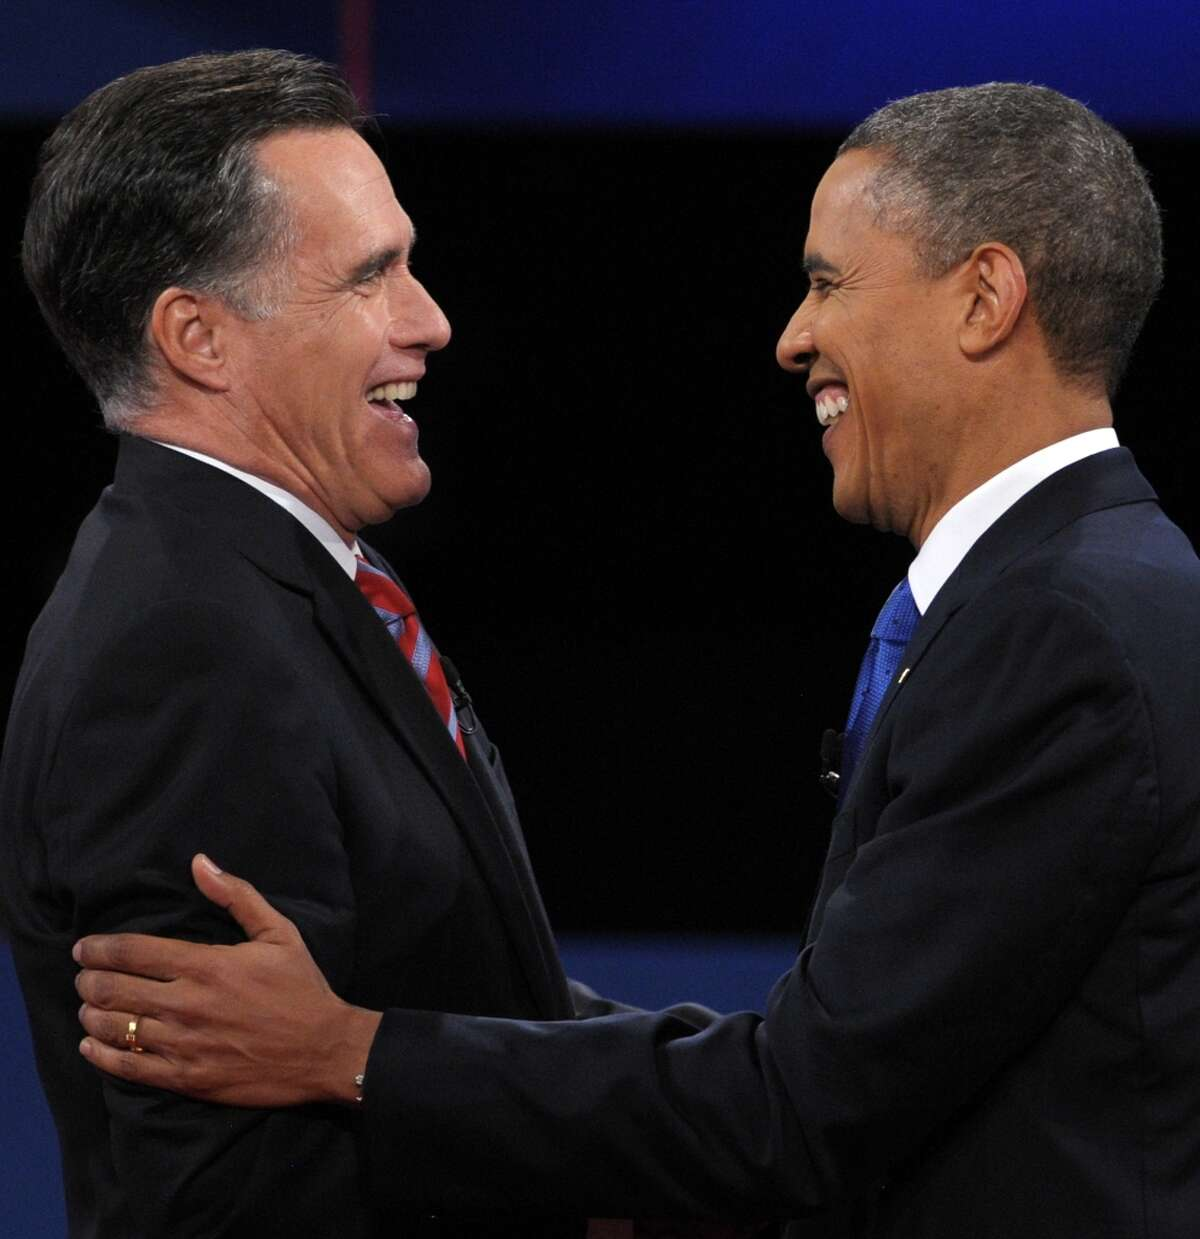 2012Republican winner: Mitt RomneyDemocratic winner: Barack Obama